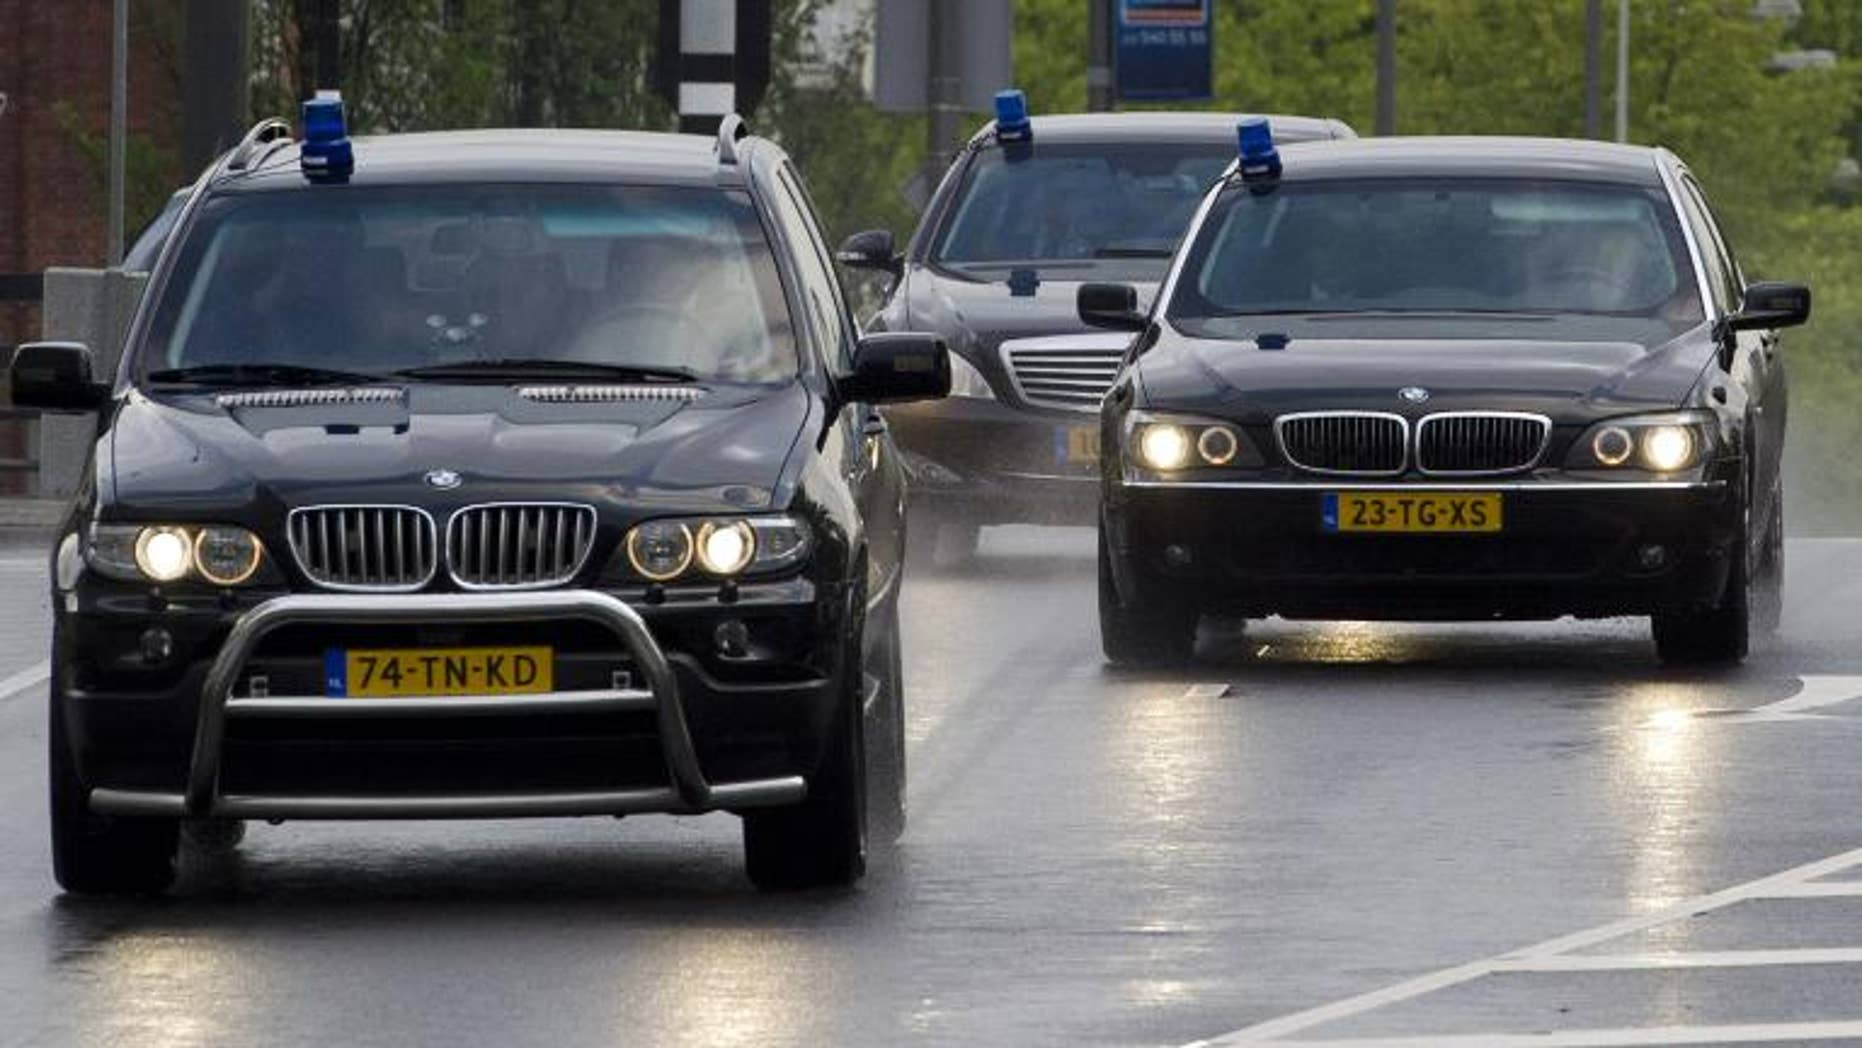 Police cars are seen in Amsterdam on June 23, 2011